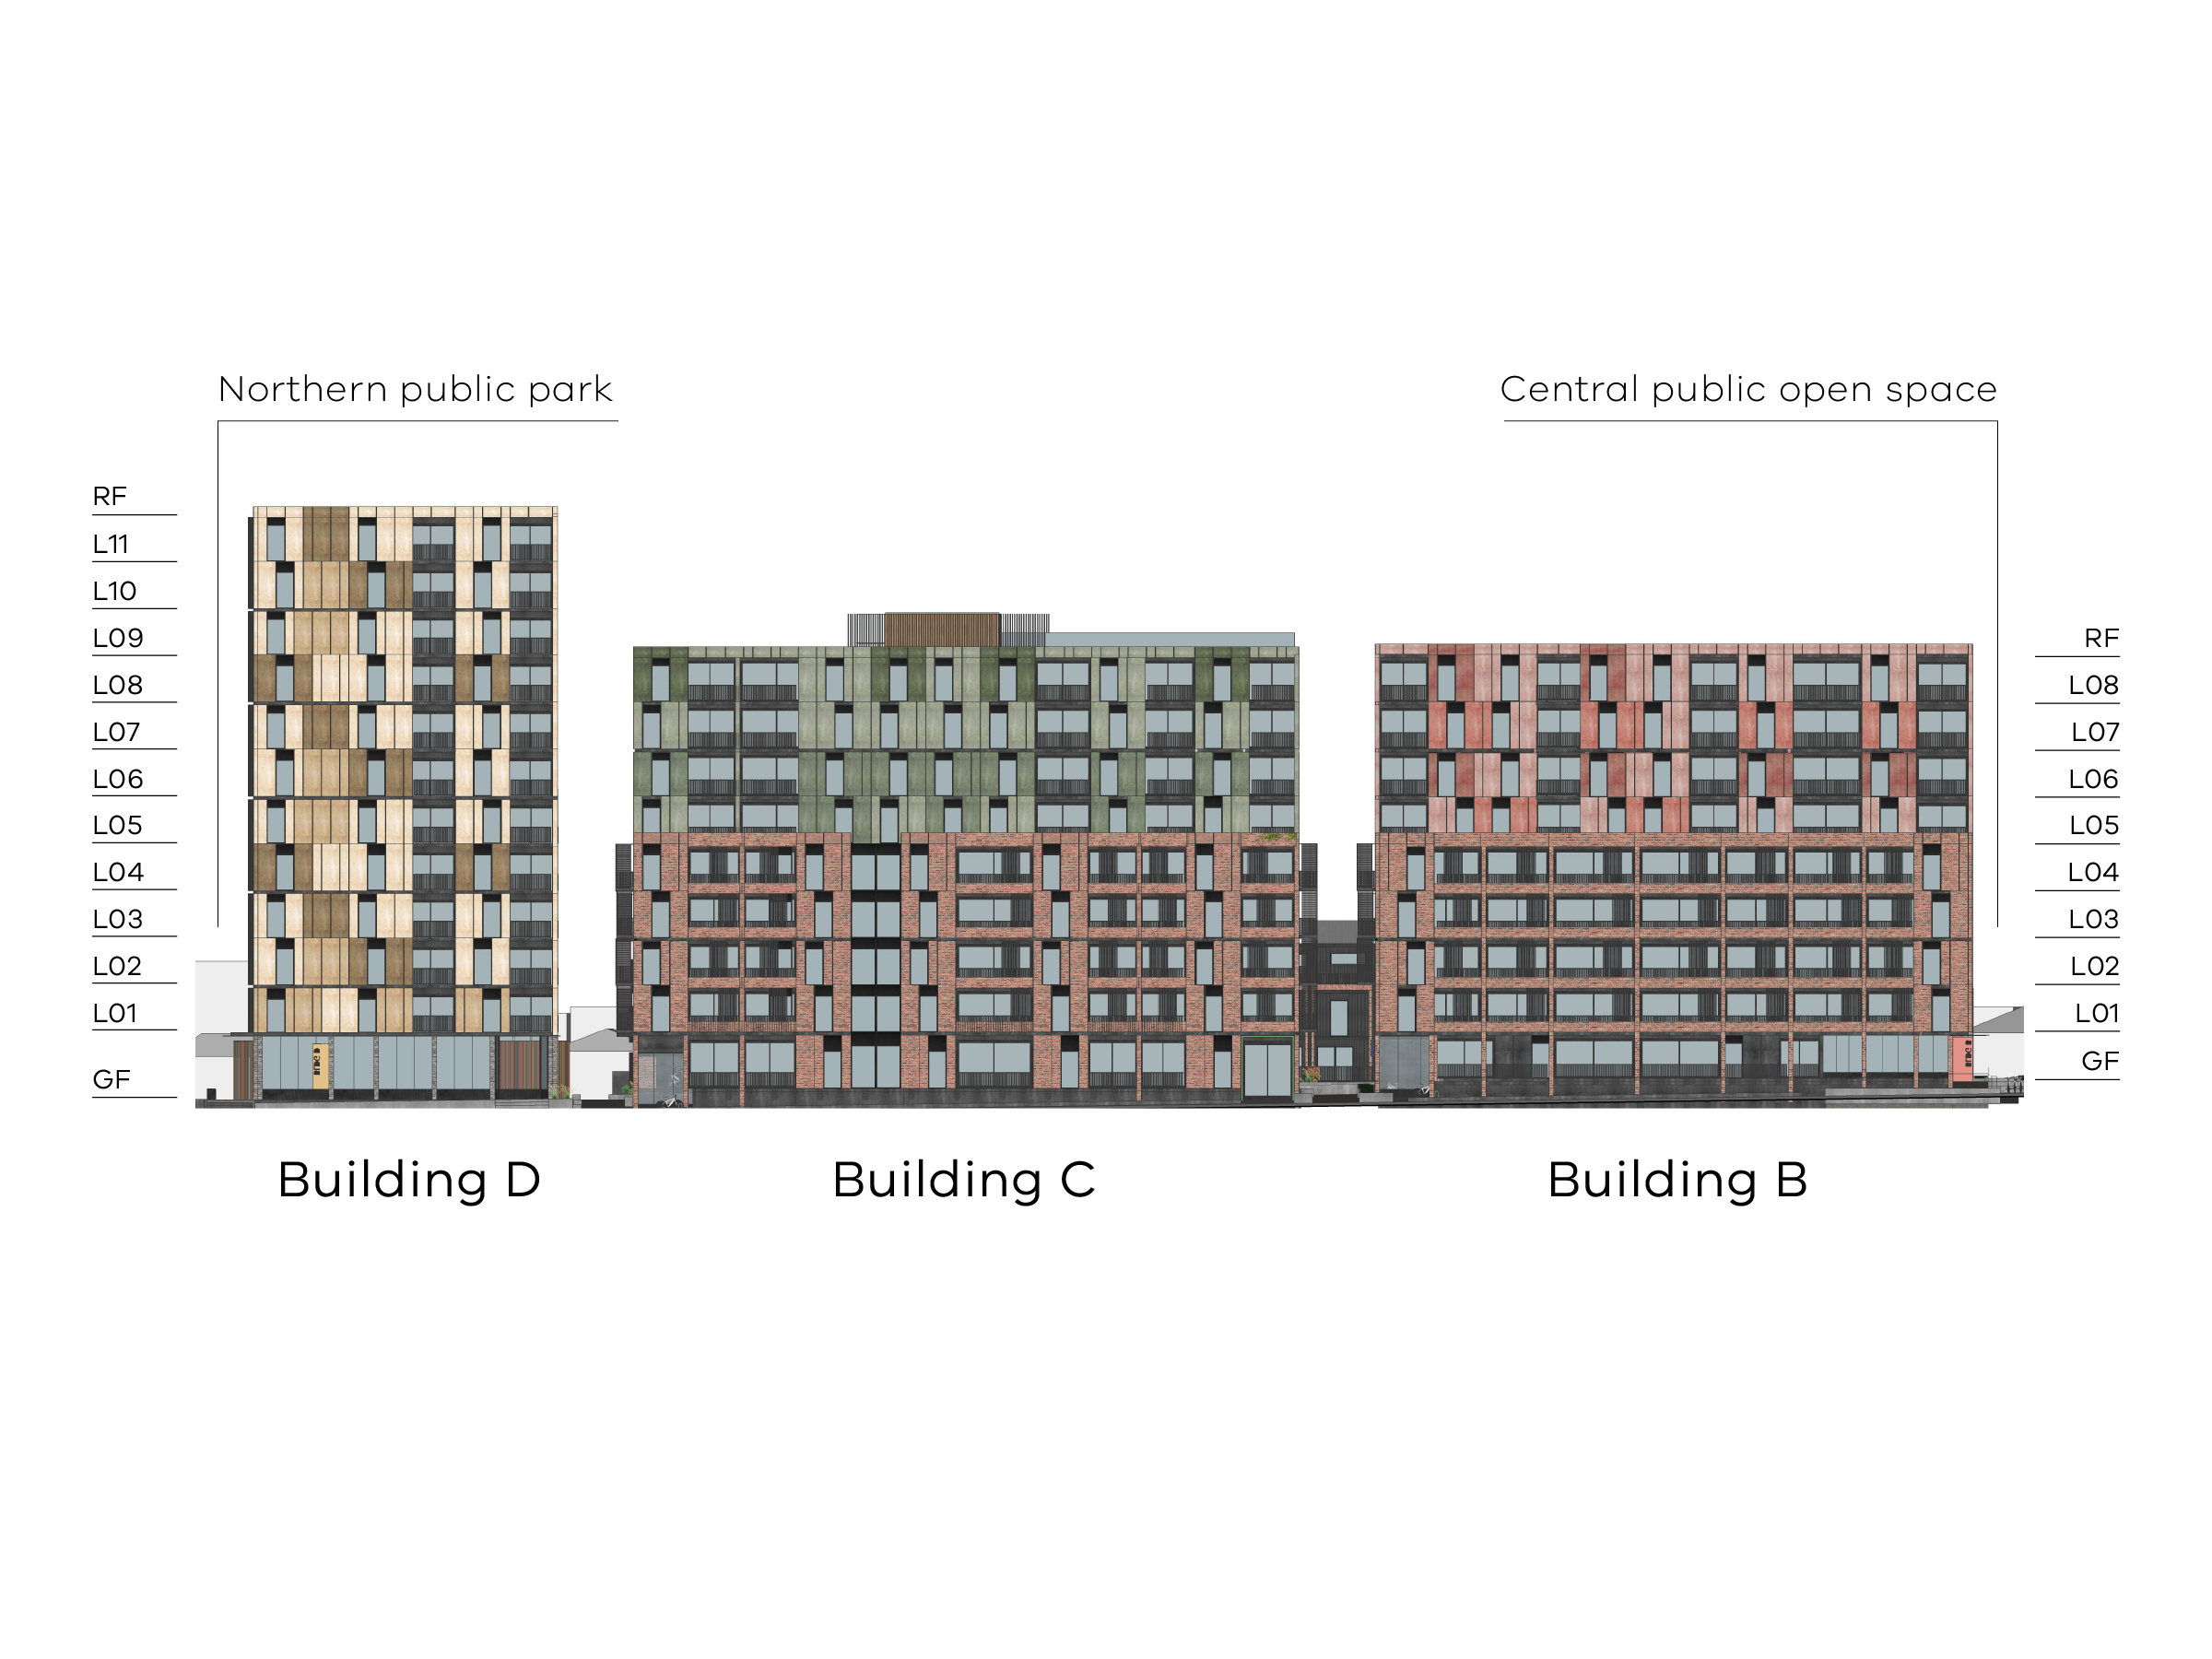 Diagram showing the heights of buildings B, C and D as seen from Bangs Street. Buildings B and C have a ground floor, levels 1-8 and a flat roof.